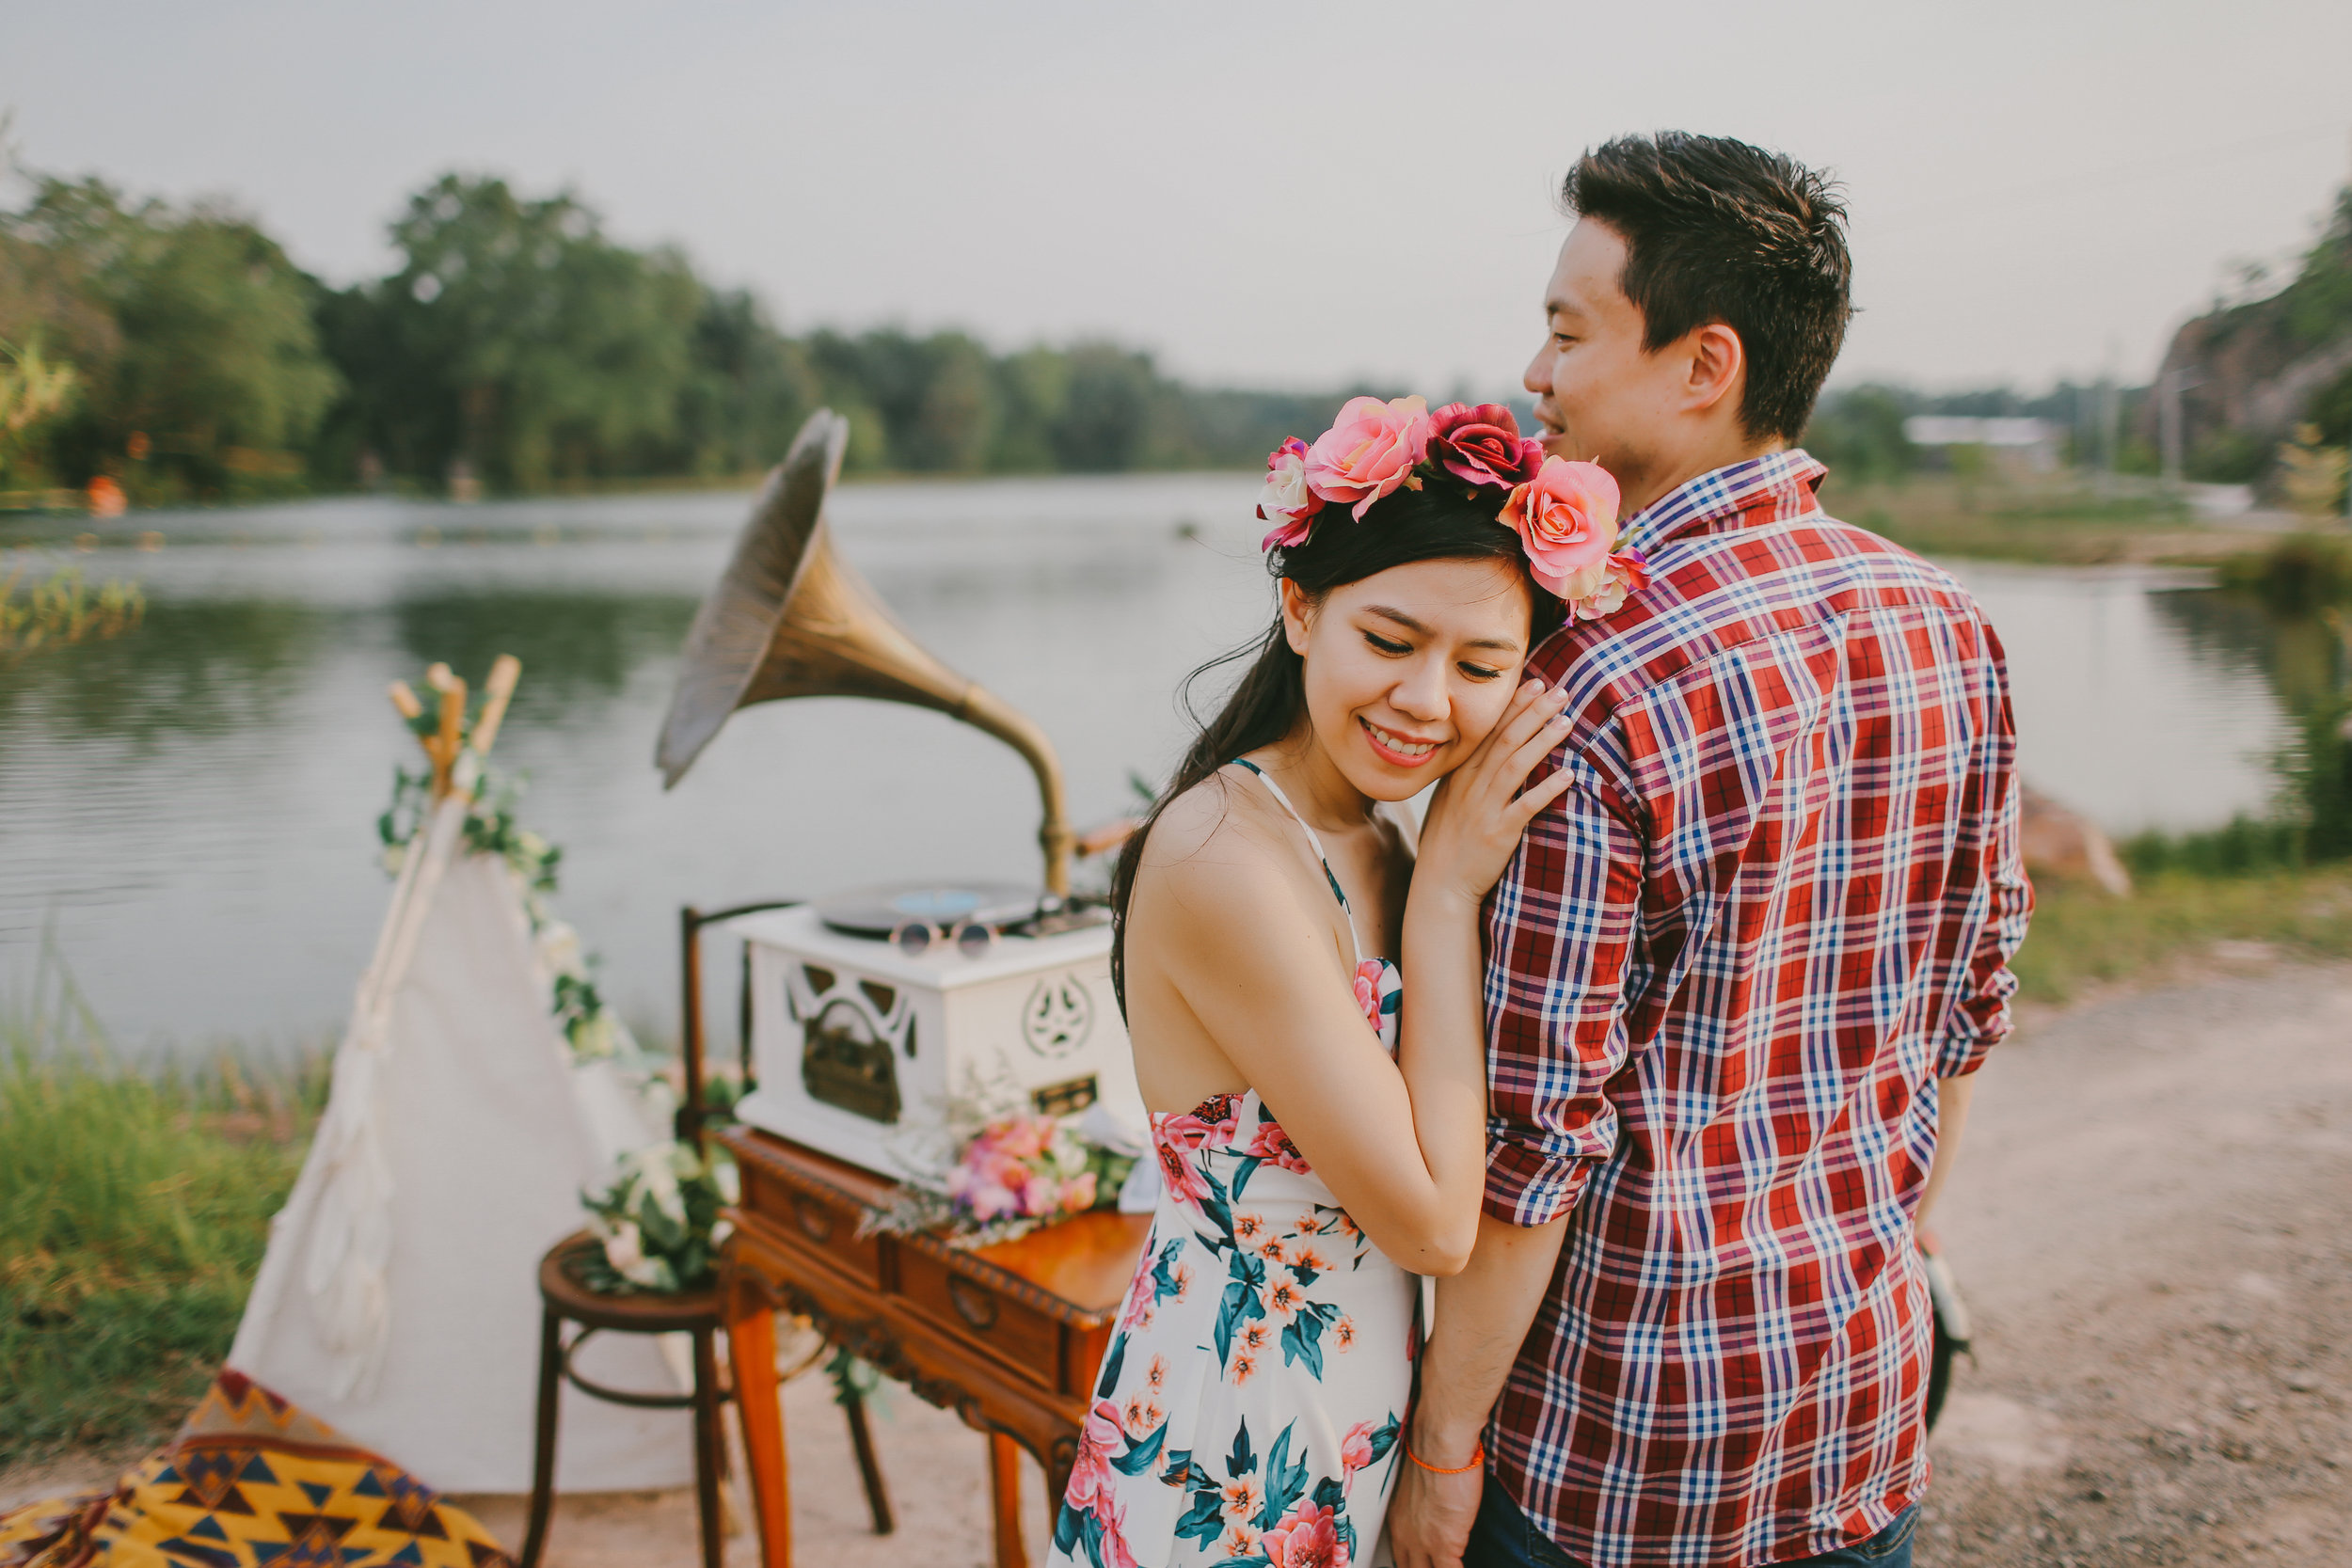 2019-Pre-wedding-numb9r-photography-highres-1424e.jpg